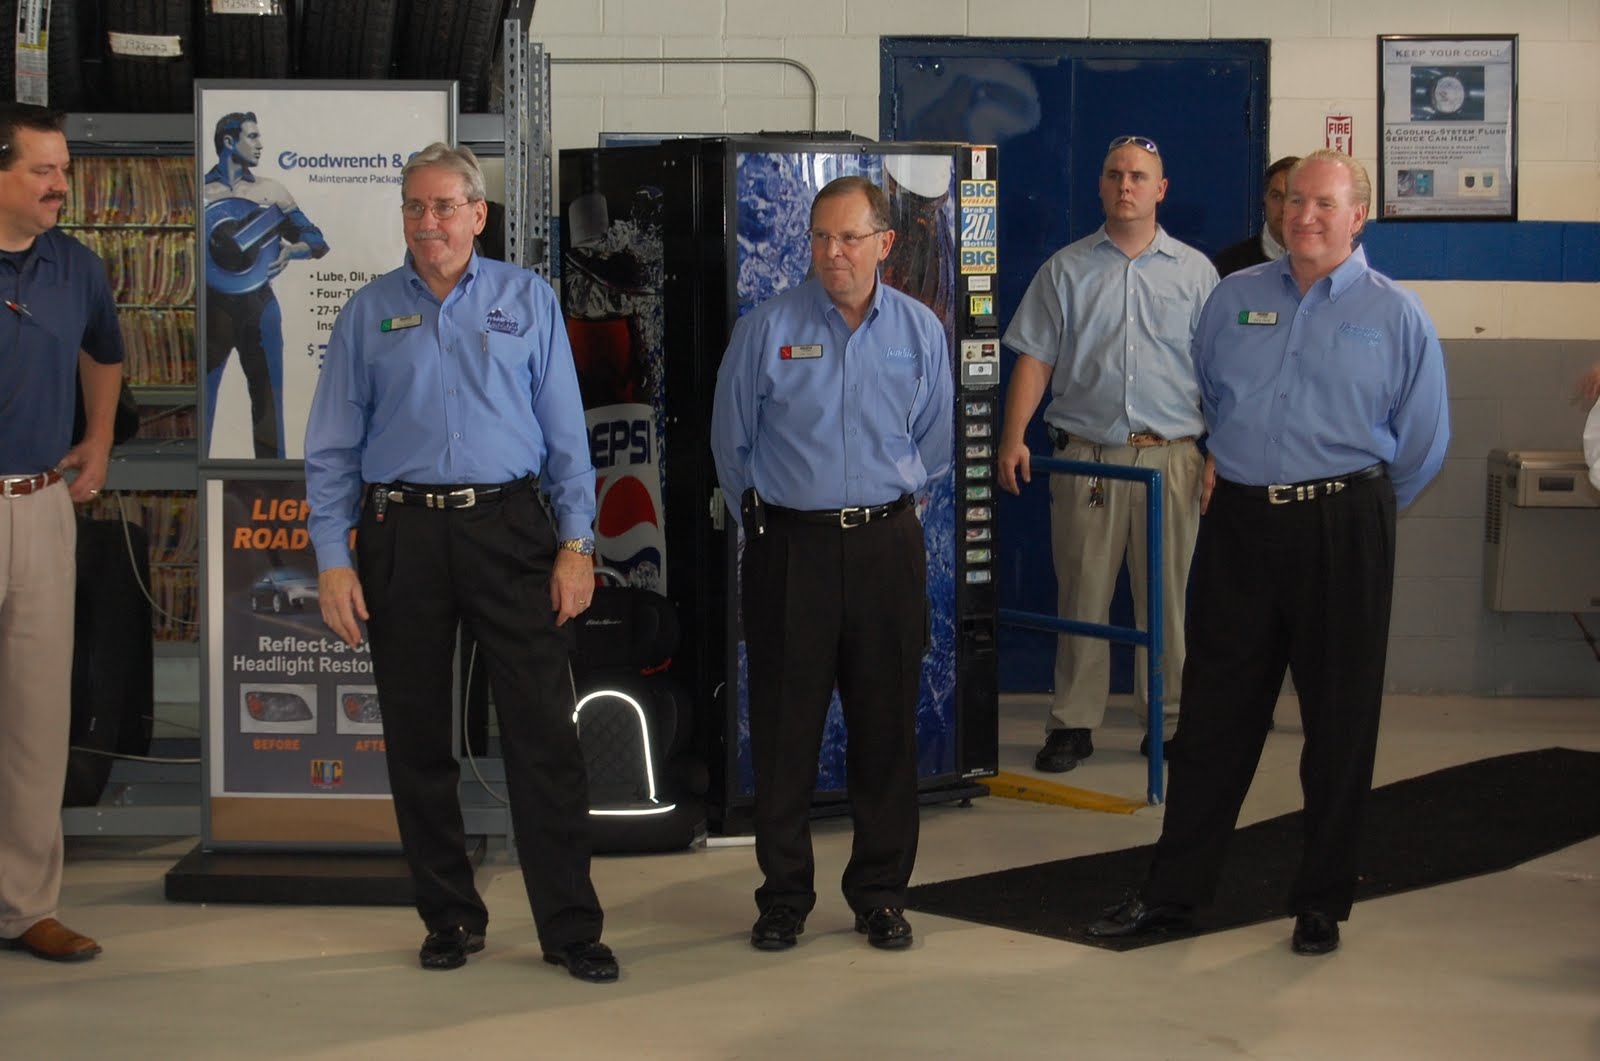 Rick Hendrick Collision >> Rick Hendrick Chevrolet Charleston News: Rick Hendrick Visits the Chevy Store